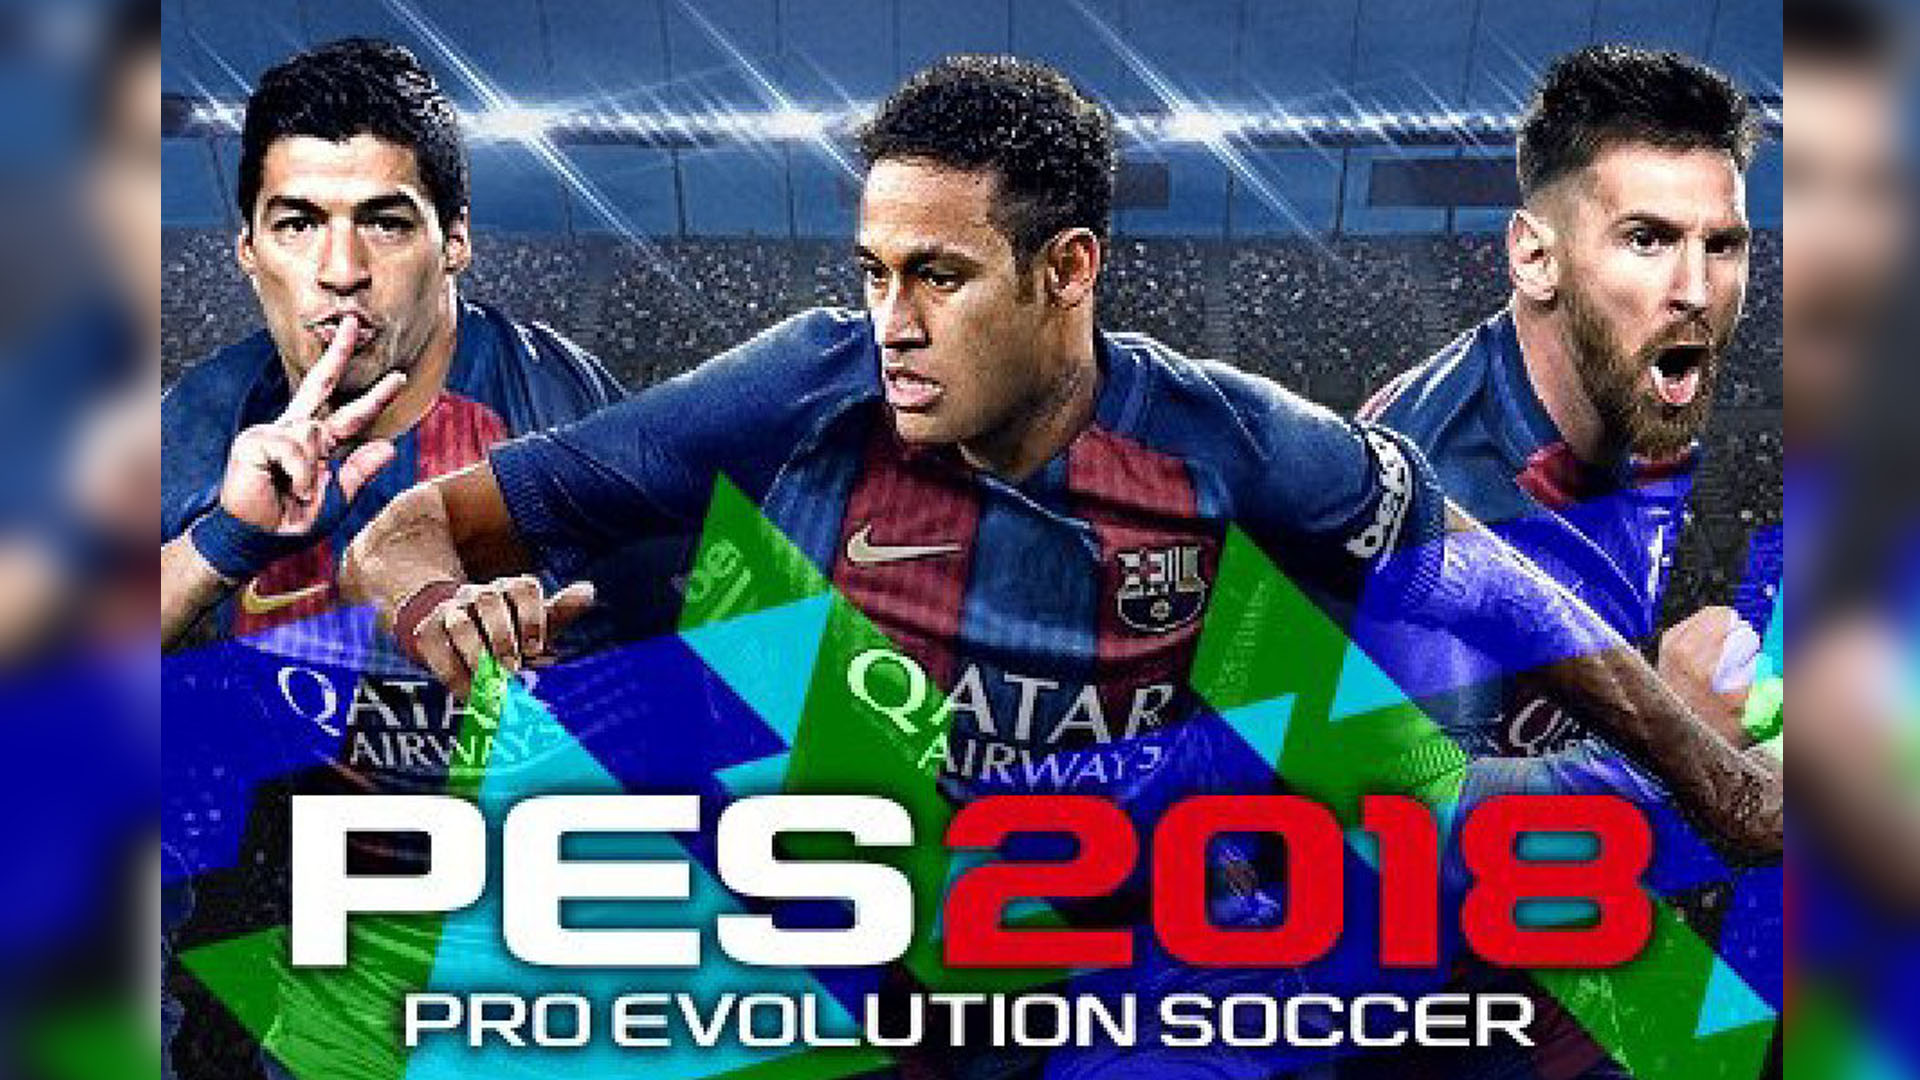 Demo de PES 2018, en PS4 y Xbox One